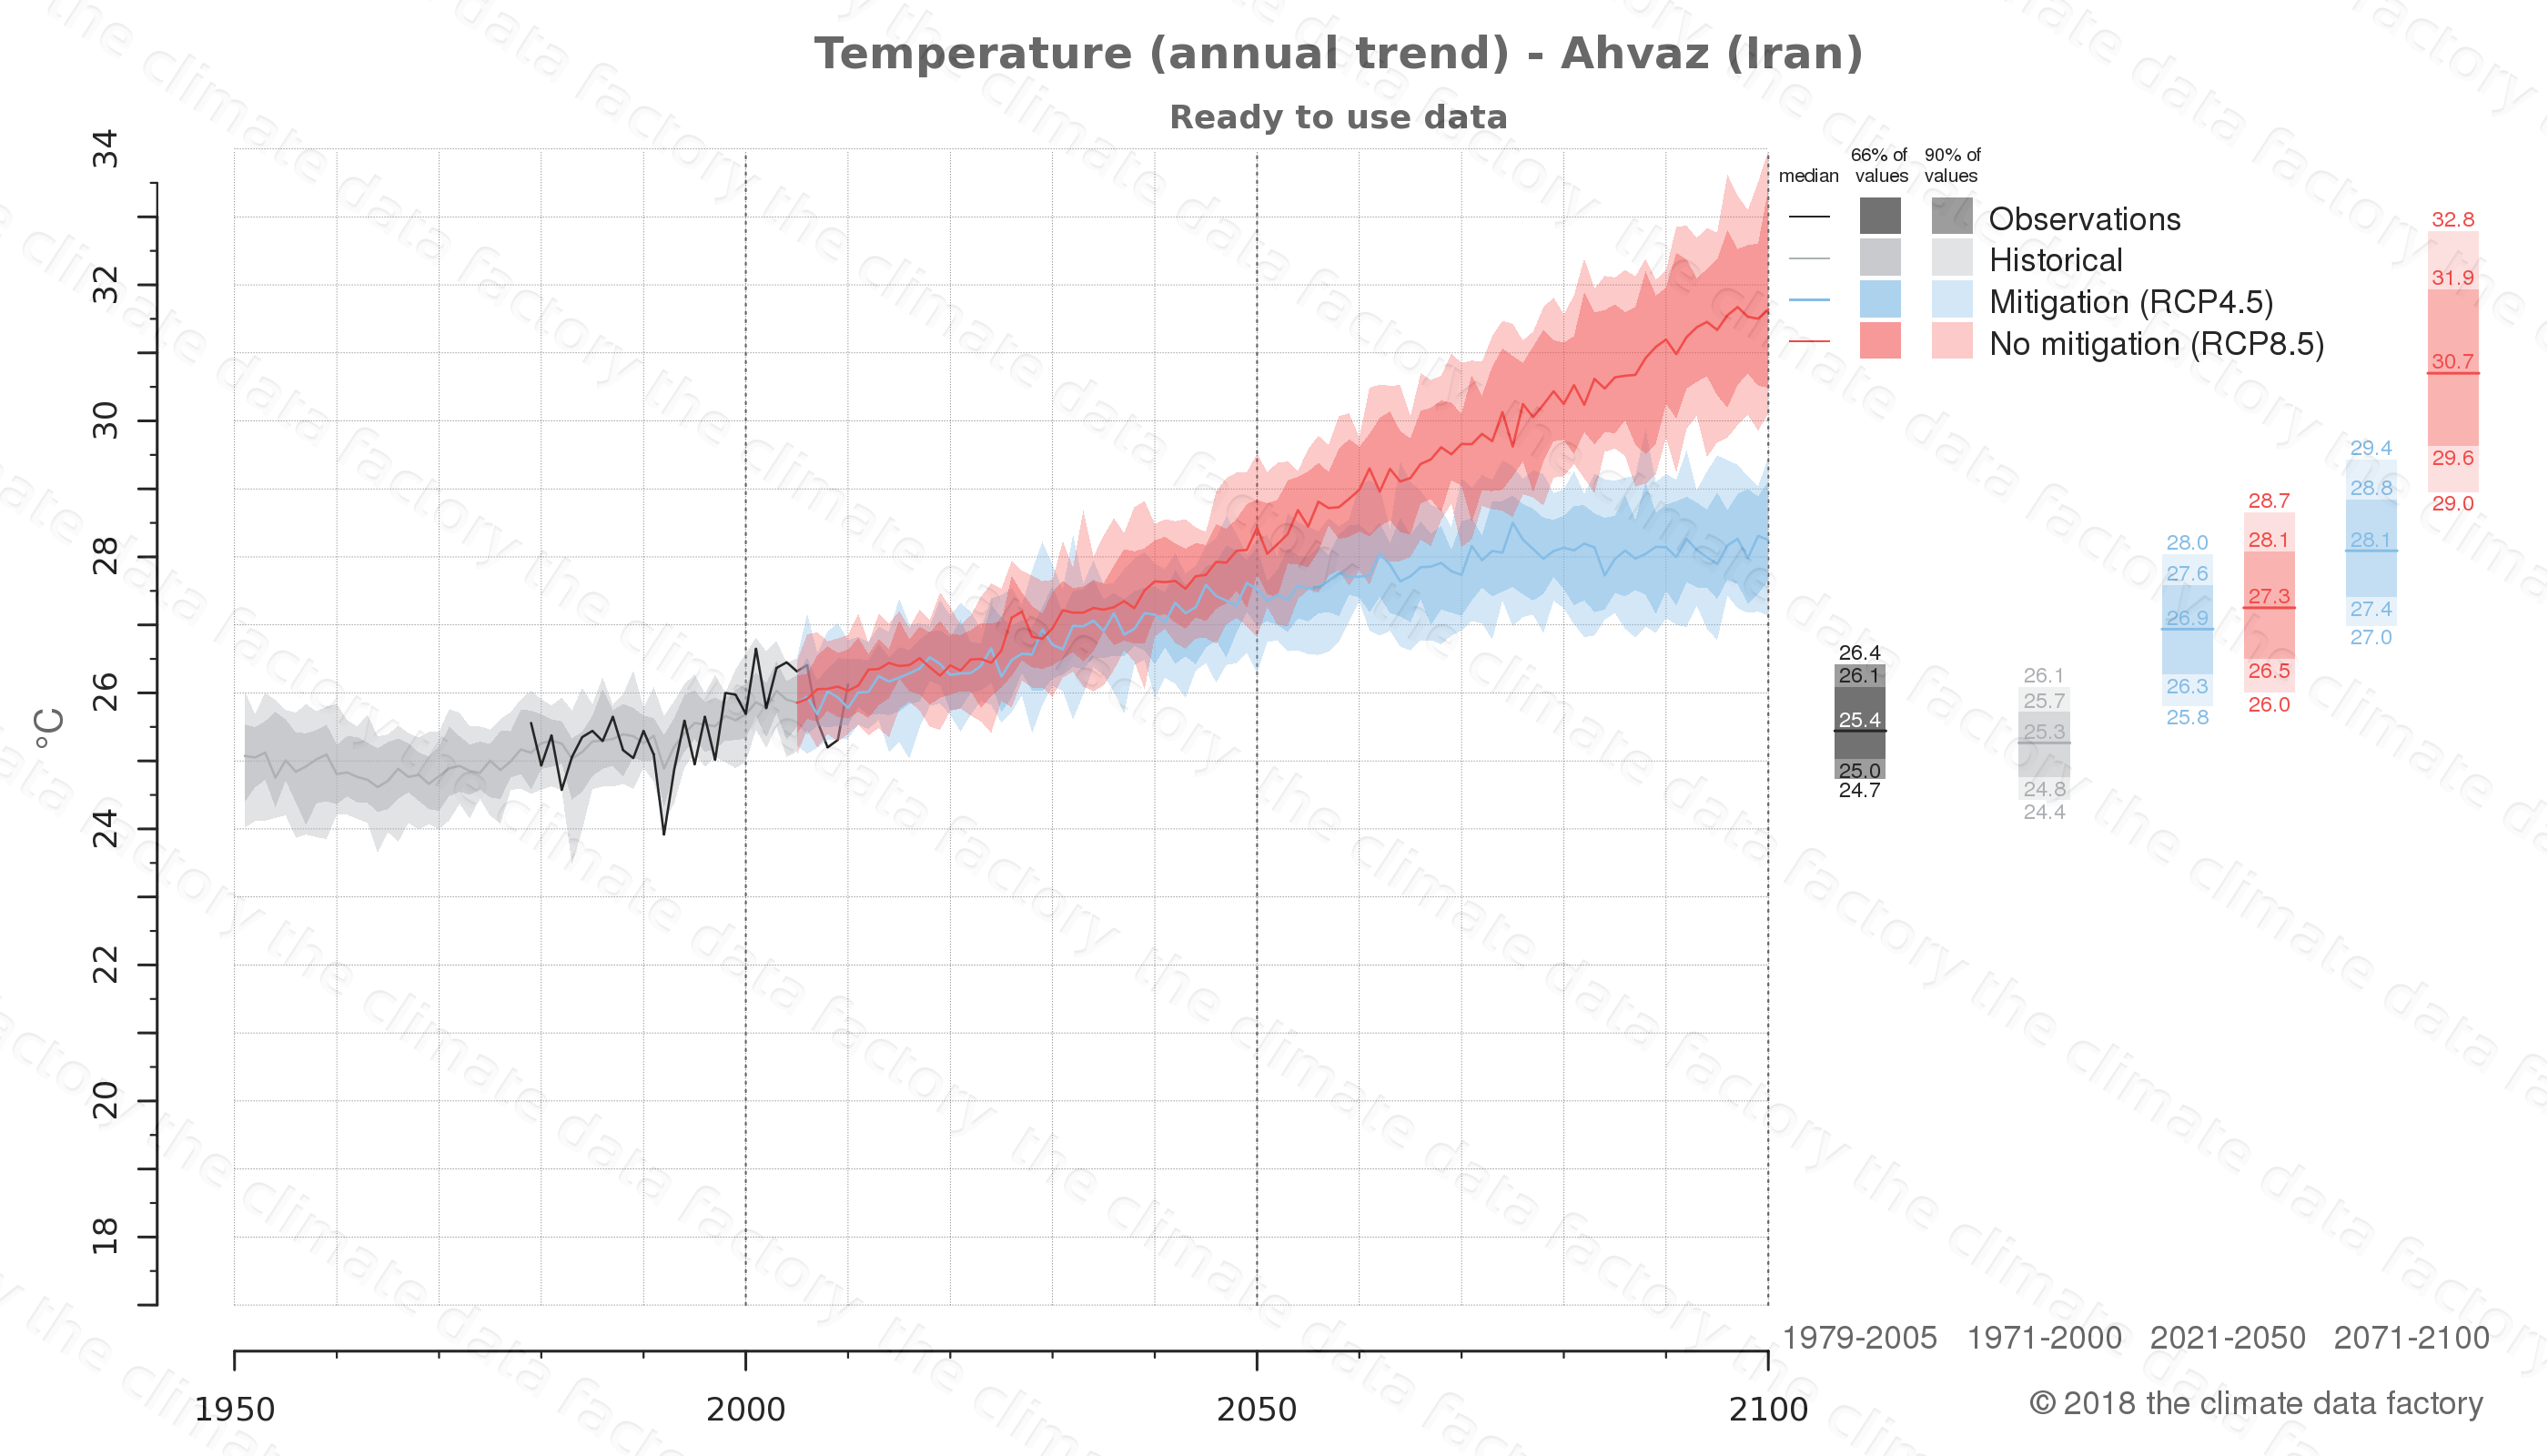 climate change data policy adaptation climate graph city data temperature ahvaz iran